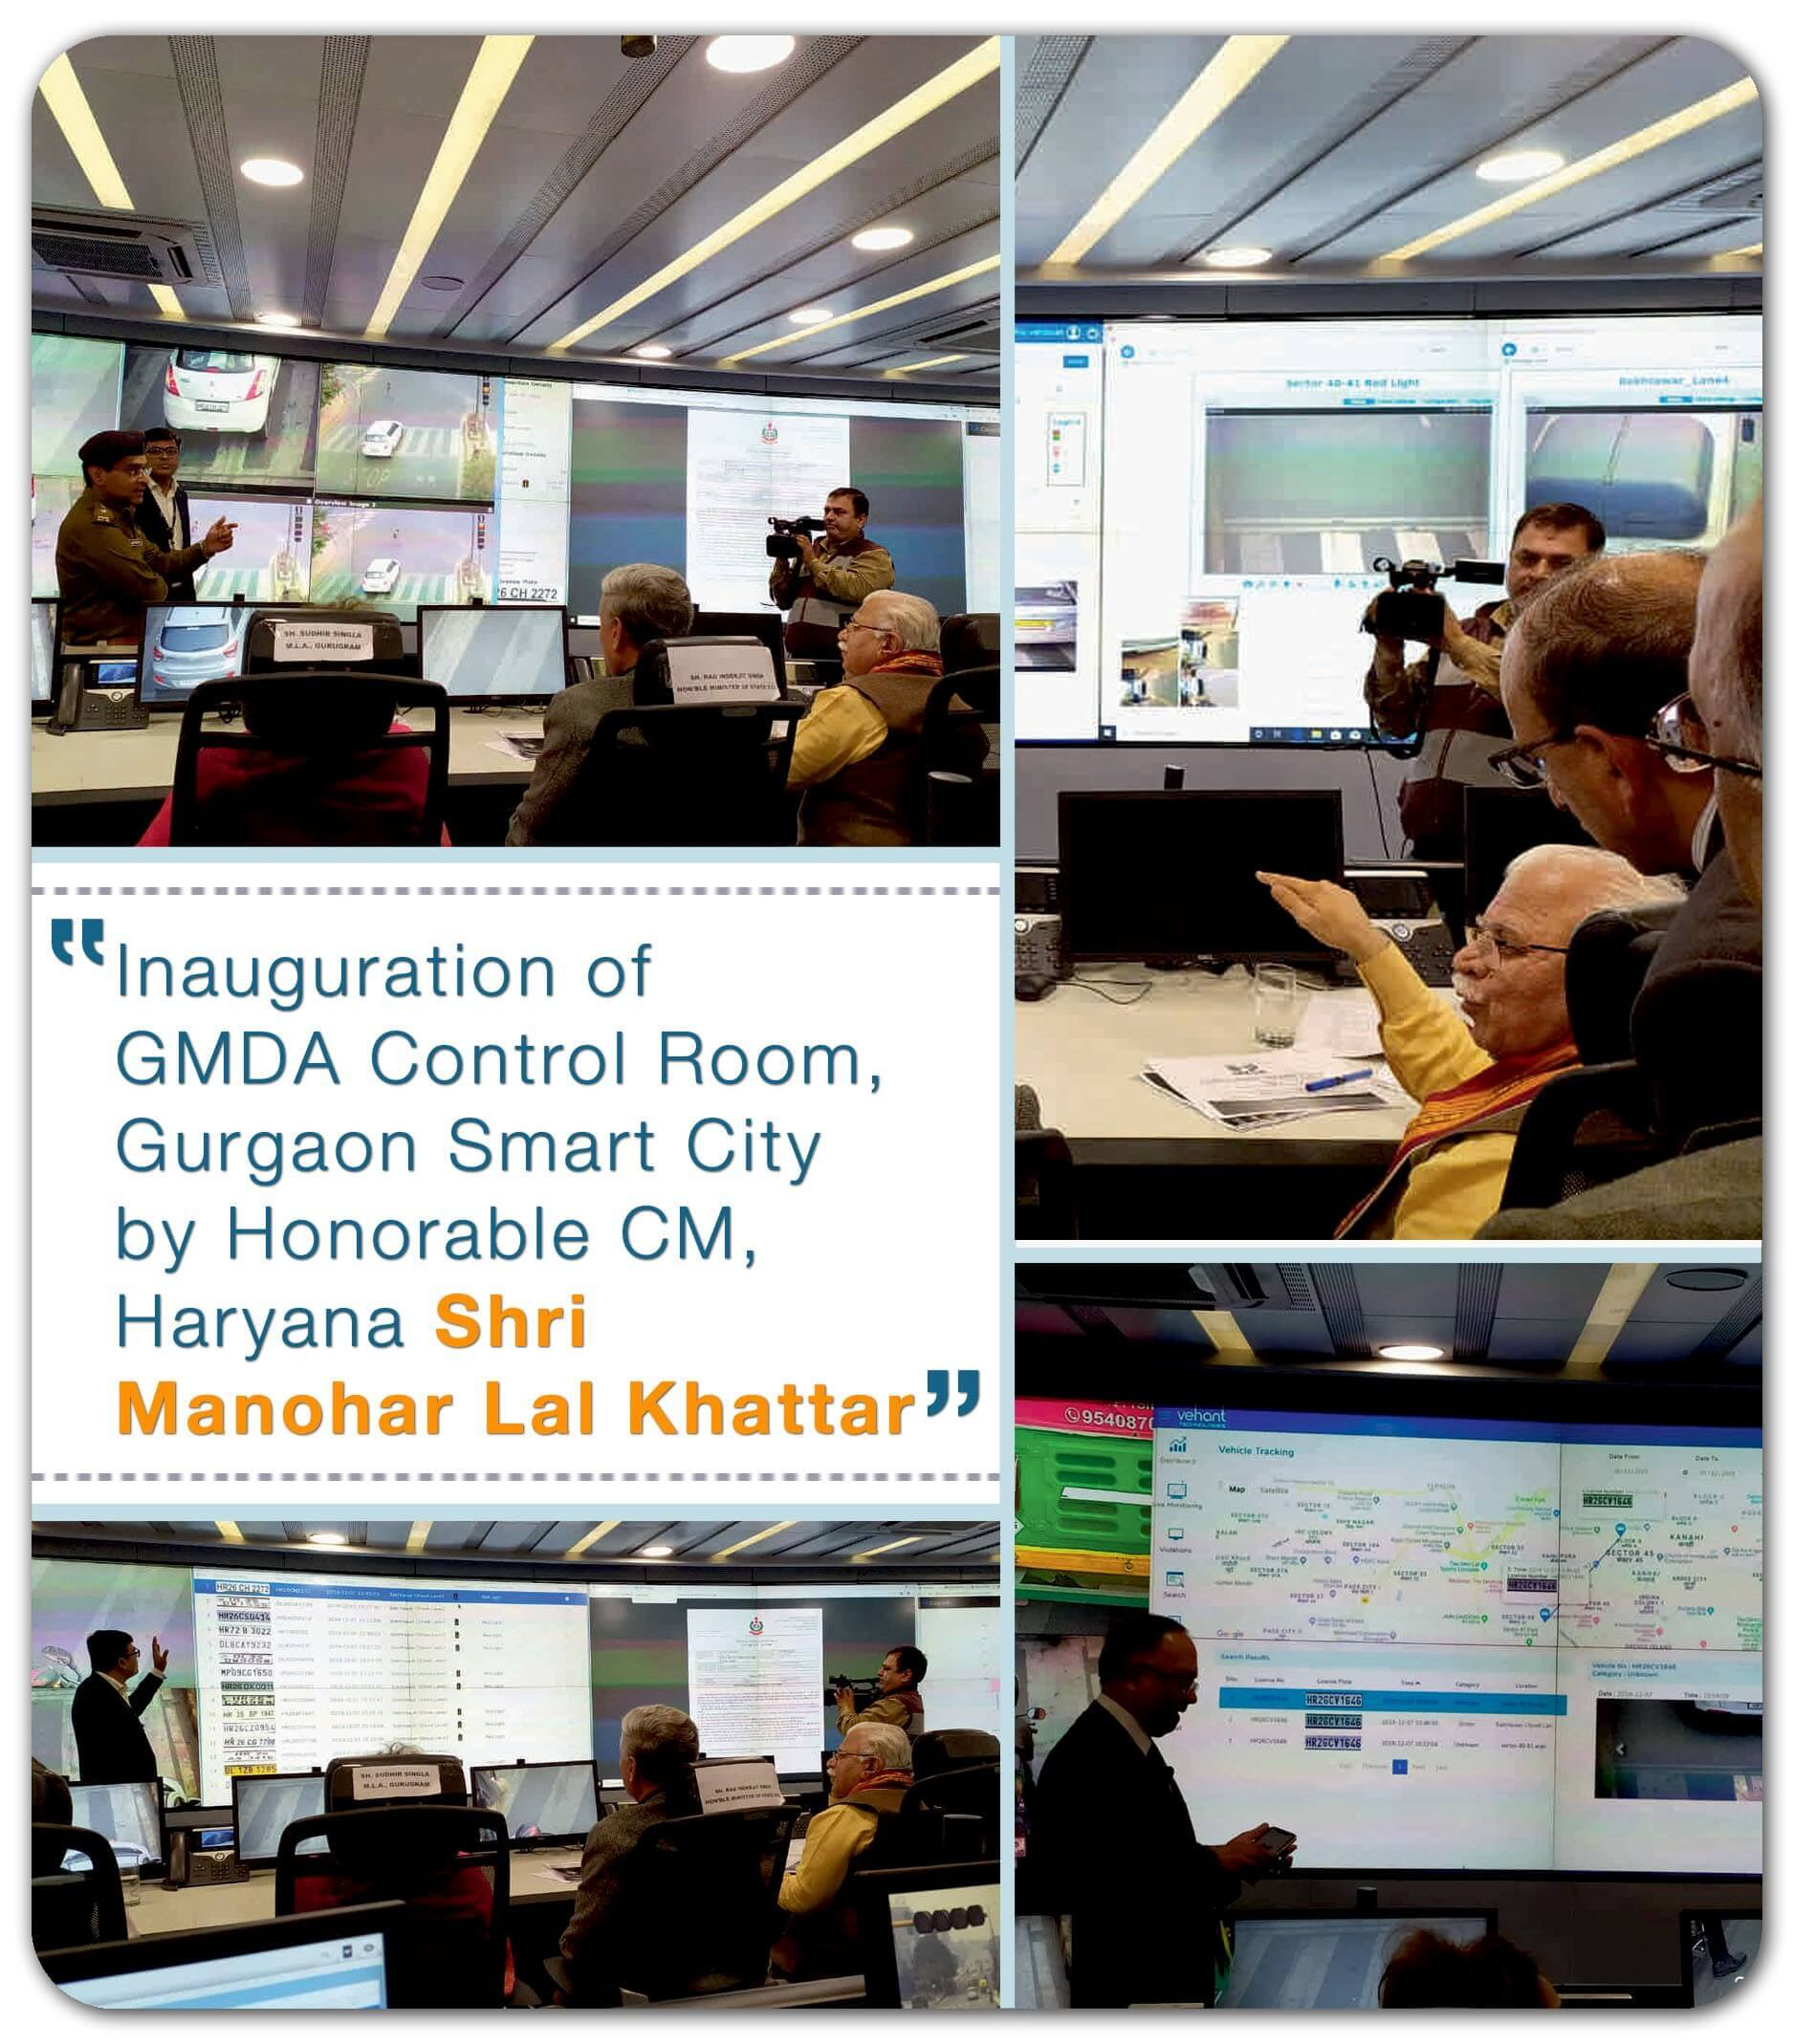 Gurgaon Smart City - ITMS and control room was inaugurated by Shri. Manohar Lal Khattar - Hon'bl CM of Haryana.